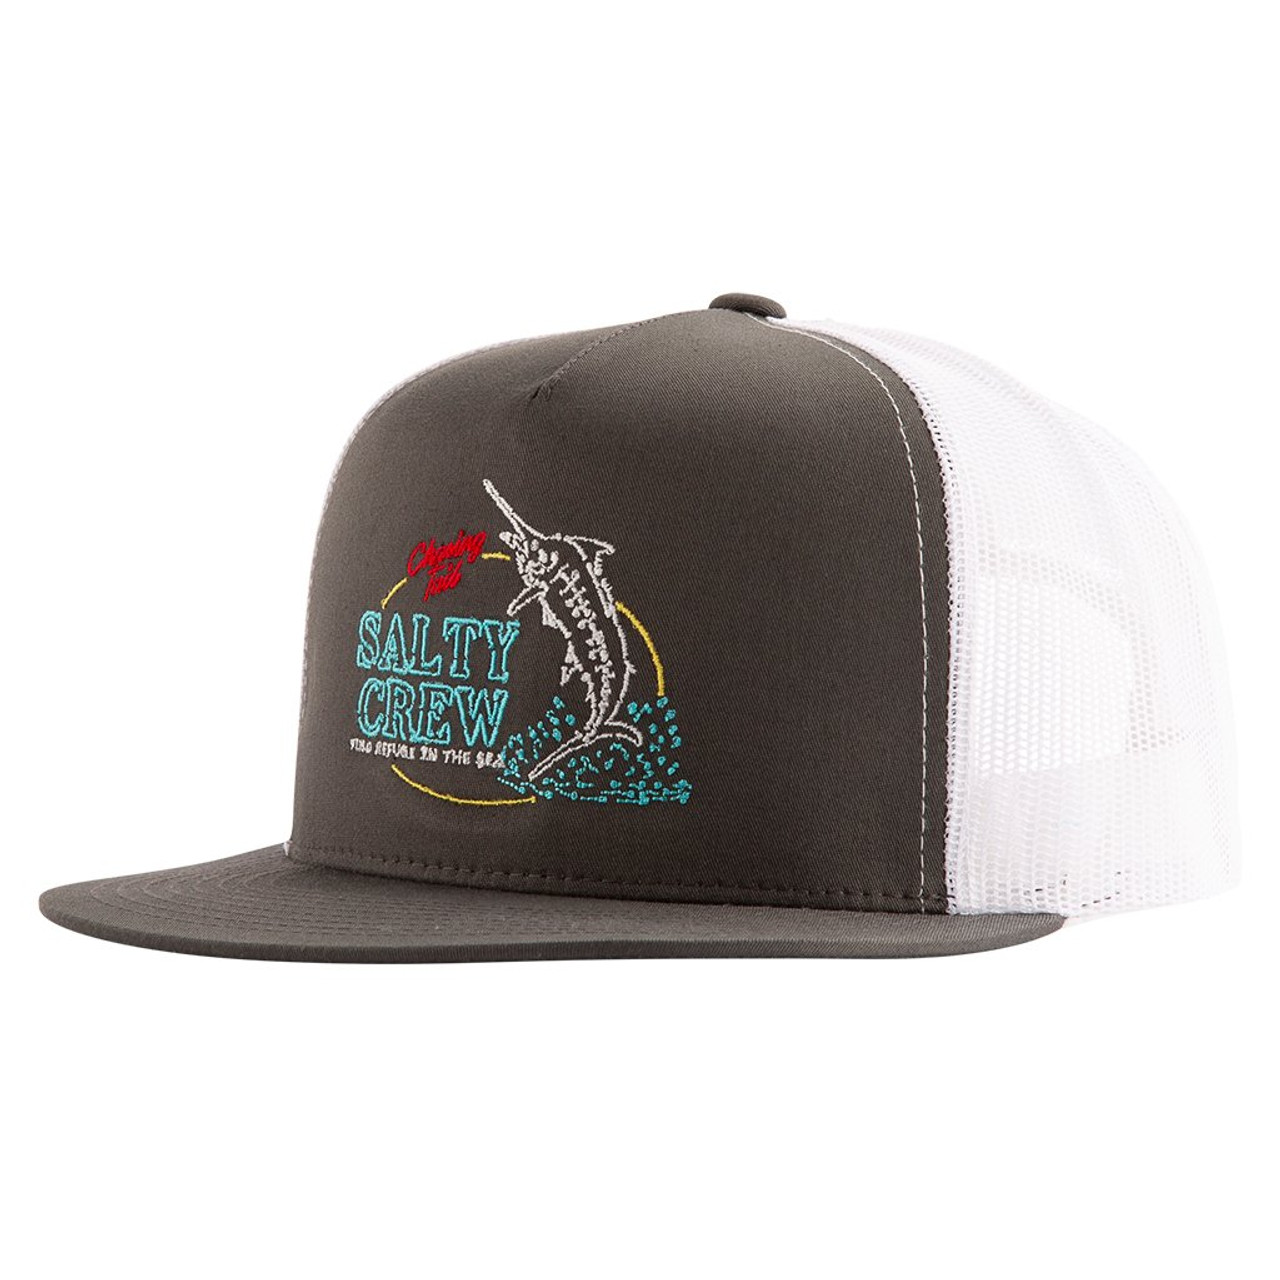 cheaper b1c55 9142e Salty Crew Hat - Fresh Catch Trucker - Charcoal White - Surf and Dirt